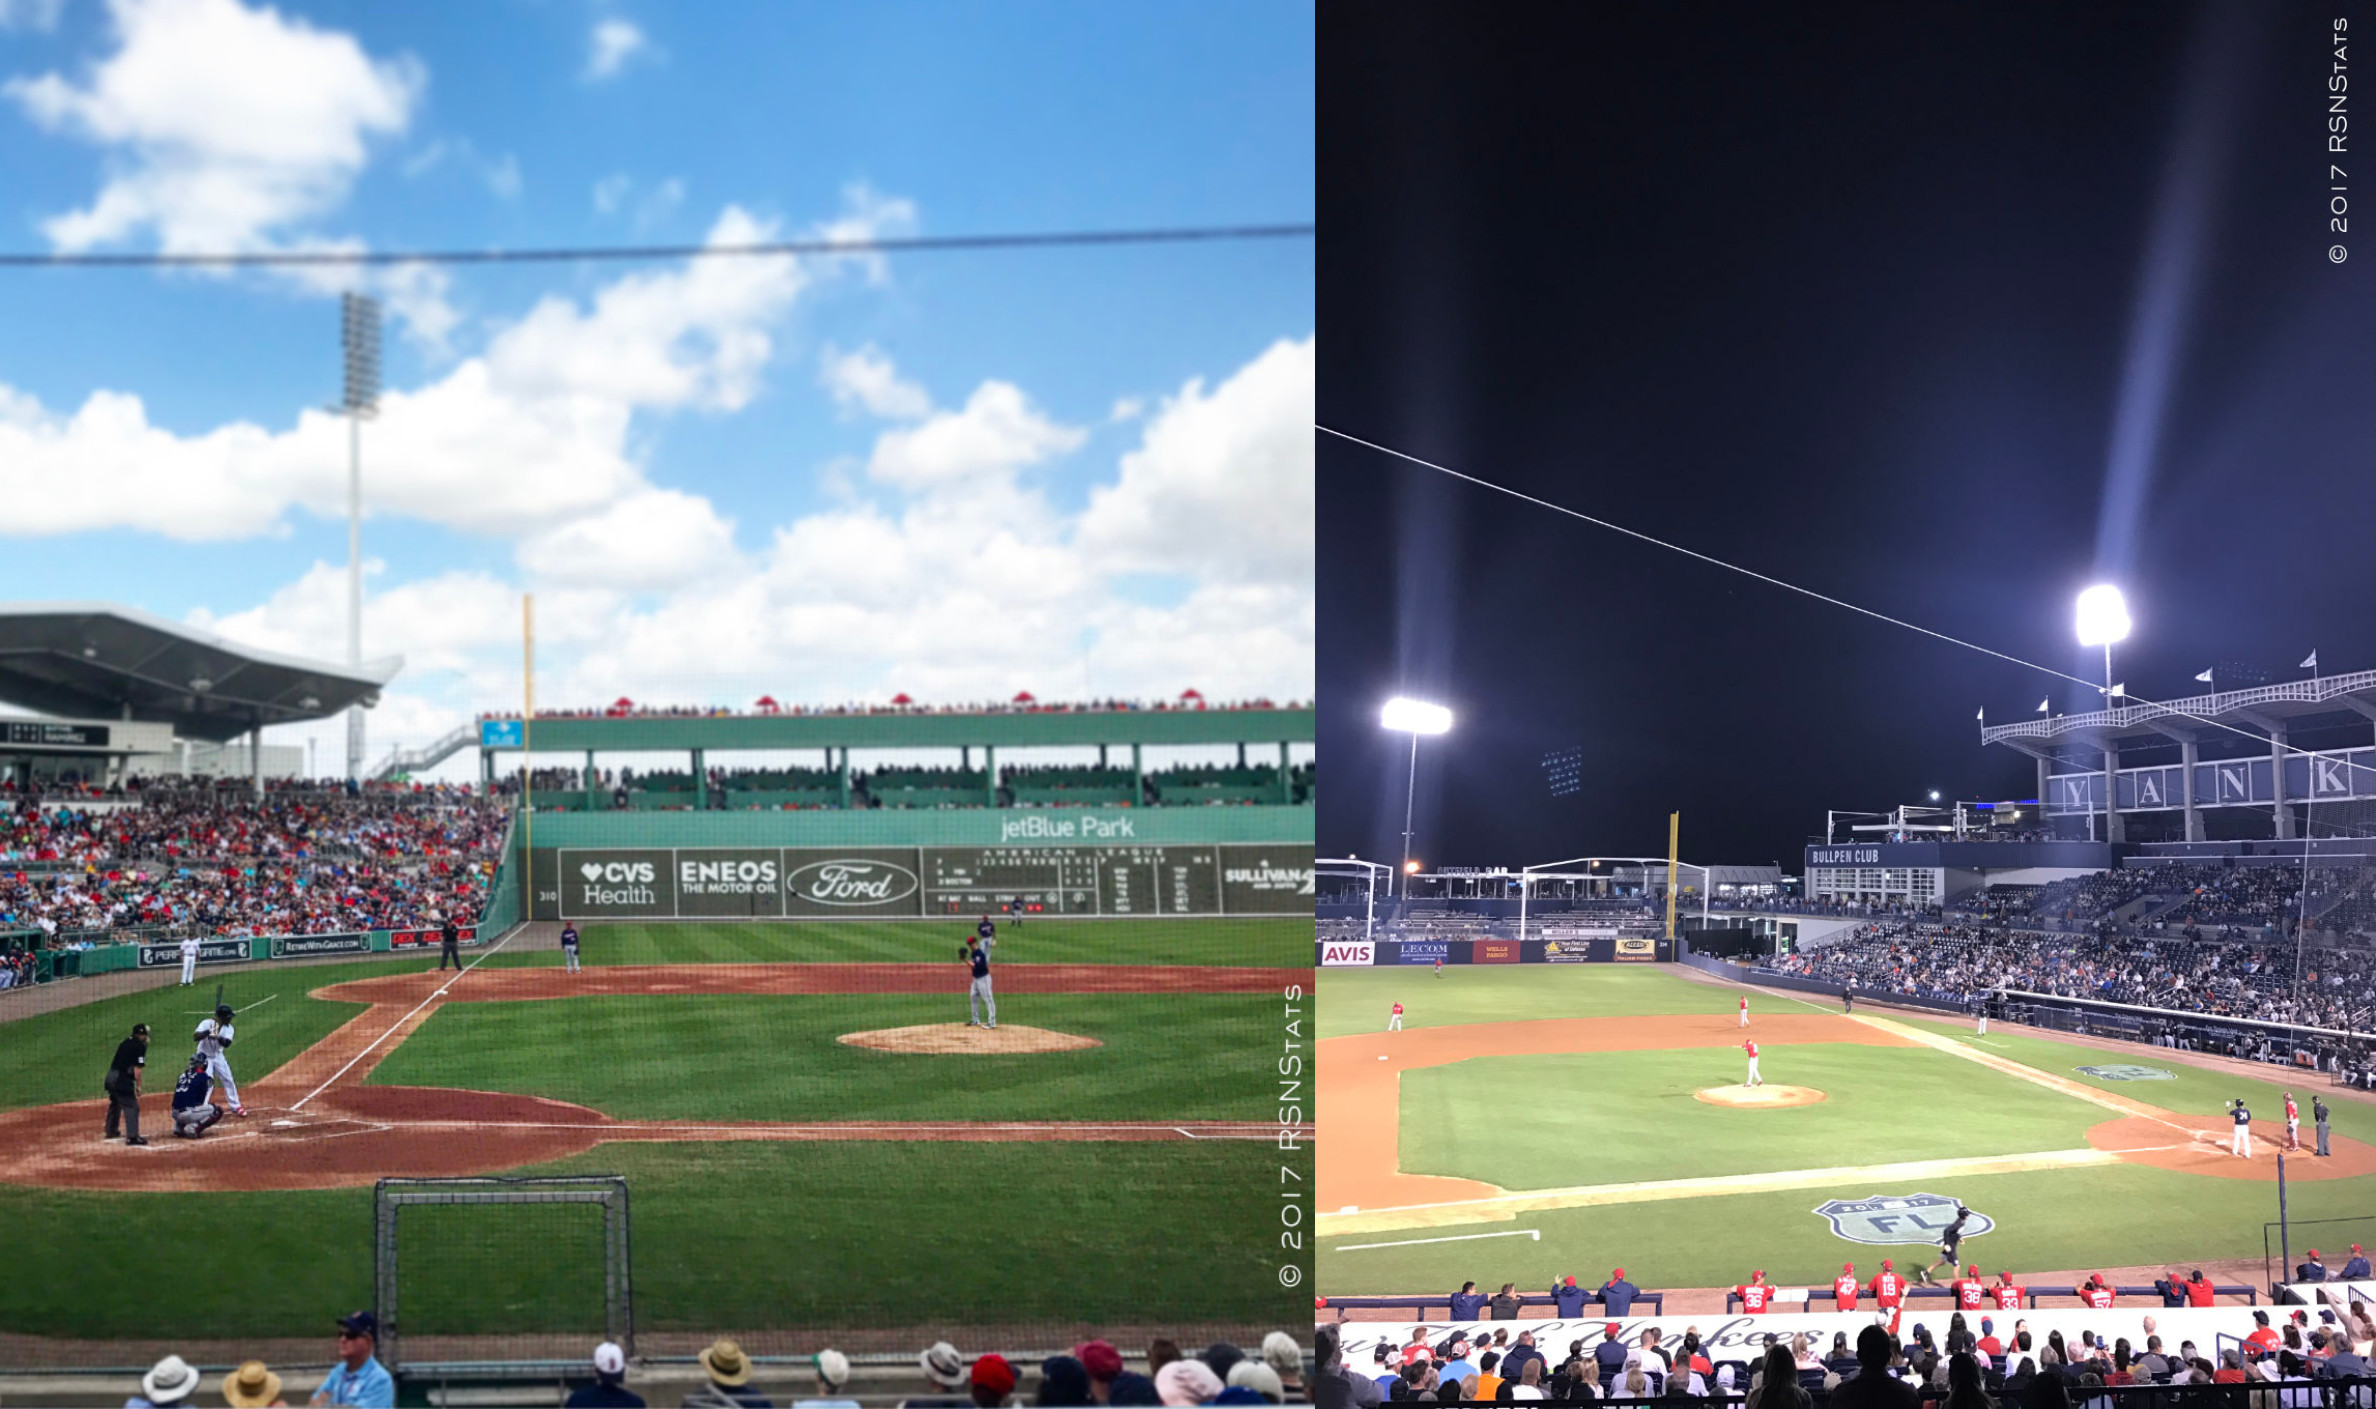 Red Sox Spring Training at home and on the road.